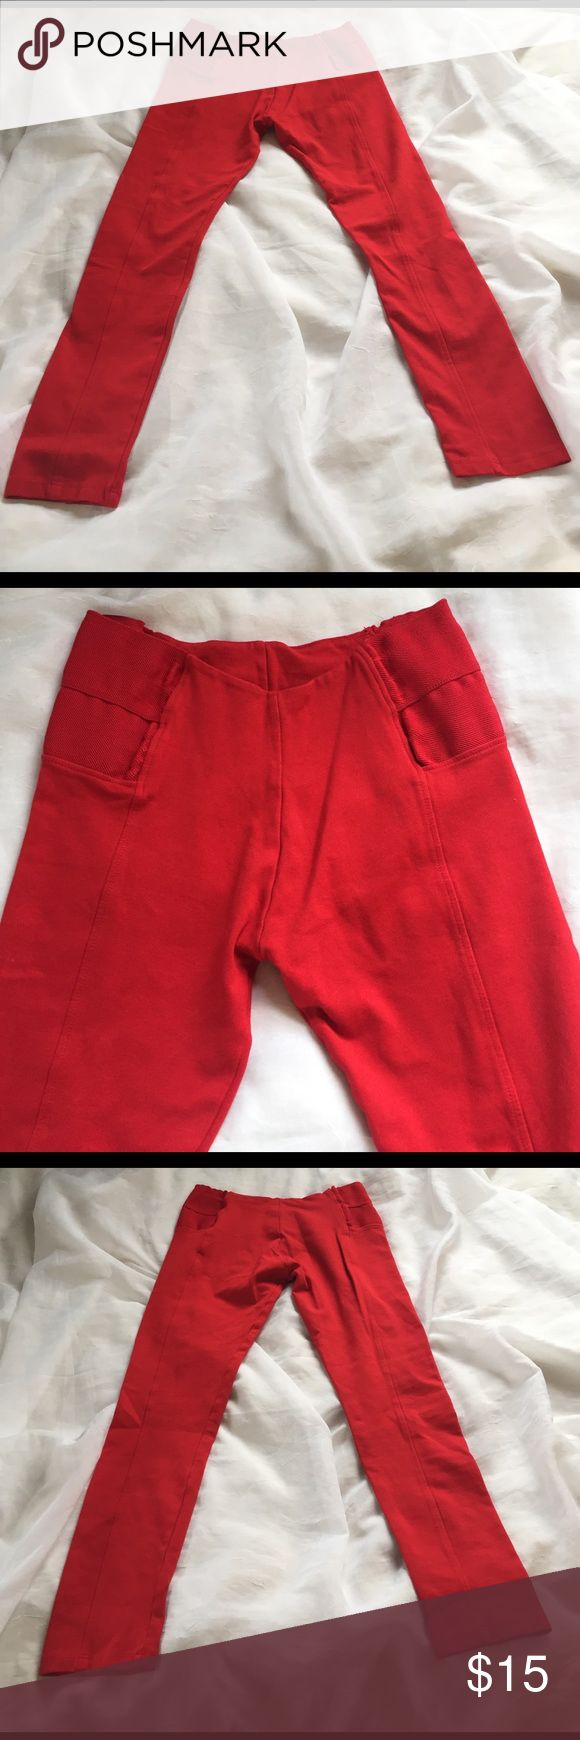 """🦊B2G1 Active USA red leggings, size med Bright red leggings in a size medium, by active USA. Thick material, with elastic hips. Waist is 28"""", with plenty of stretch, rise 9.5"""", inseam 26.6""""s some wear to elastic waist as pics show. 🦊 I do not model or trade. Please use measurements provided, and ask all questions prior to purchase. I want happy customers! 😊 Active USA Pants Leggings"""